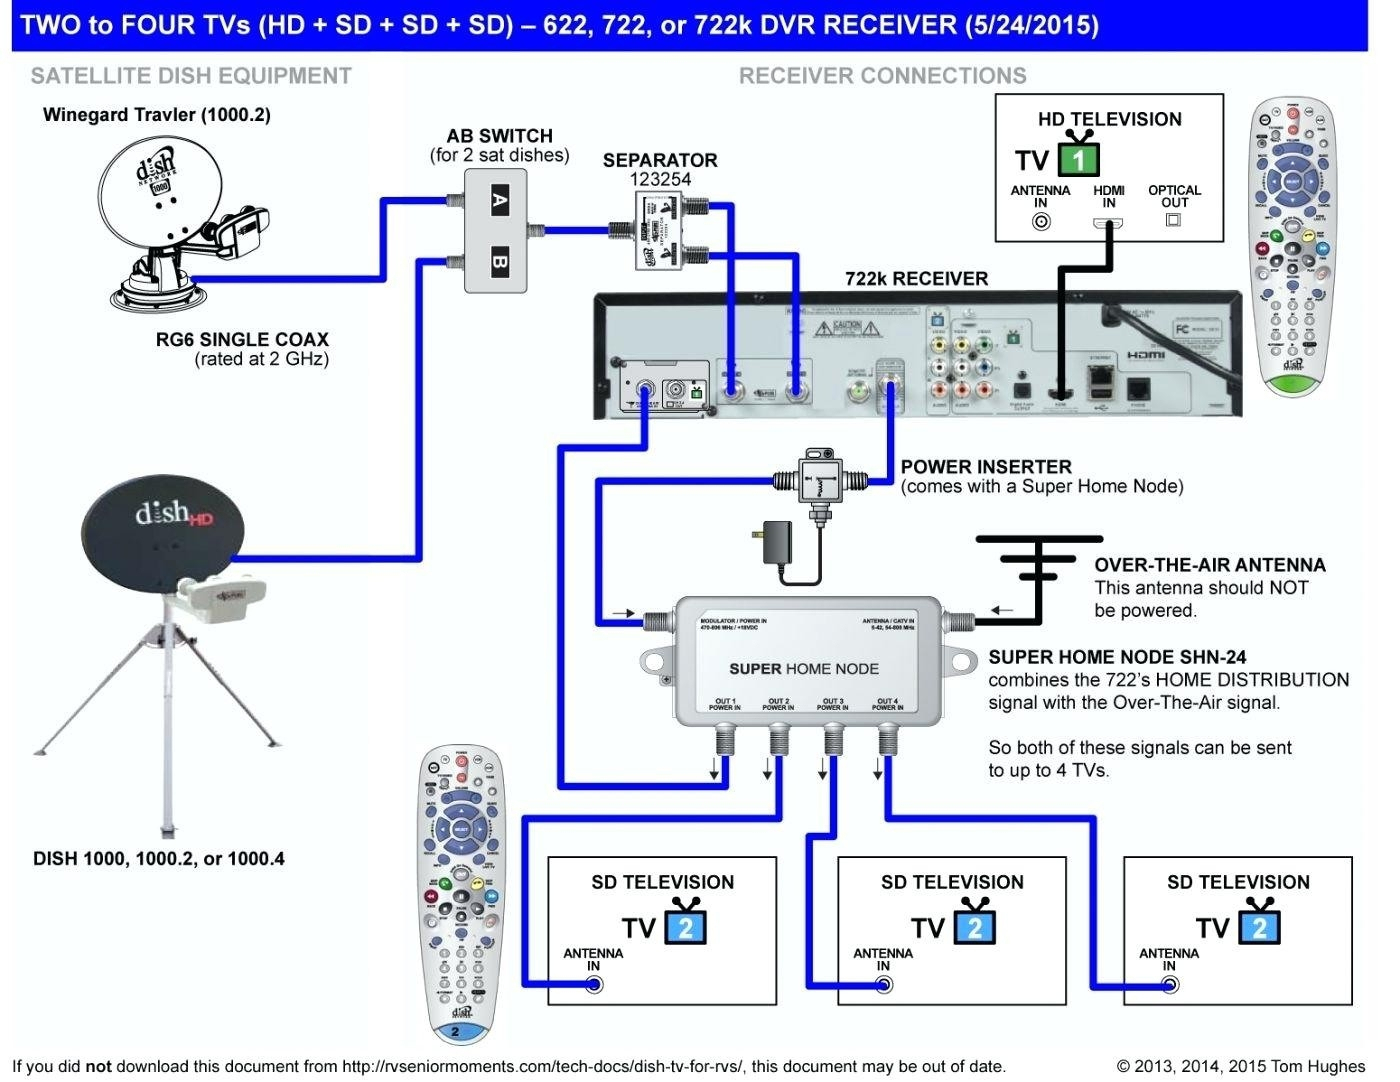 Dish Network Vip722K Wiring Diagram | Manual E-Books - Dish Vip722K Wiring Diagram